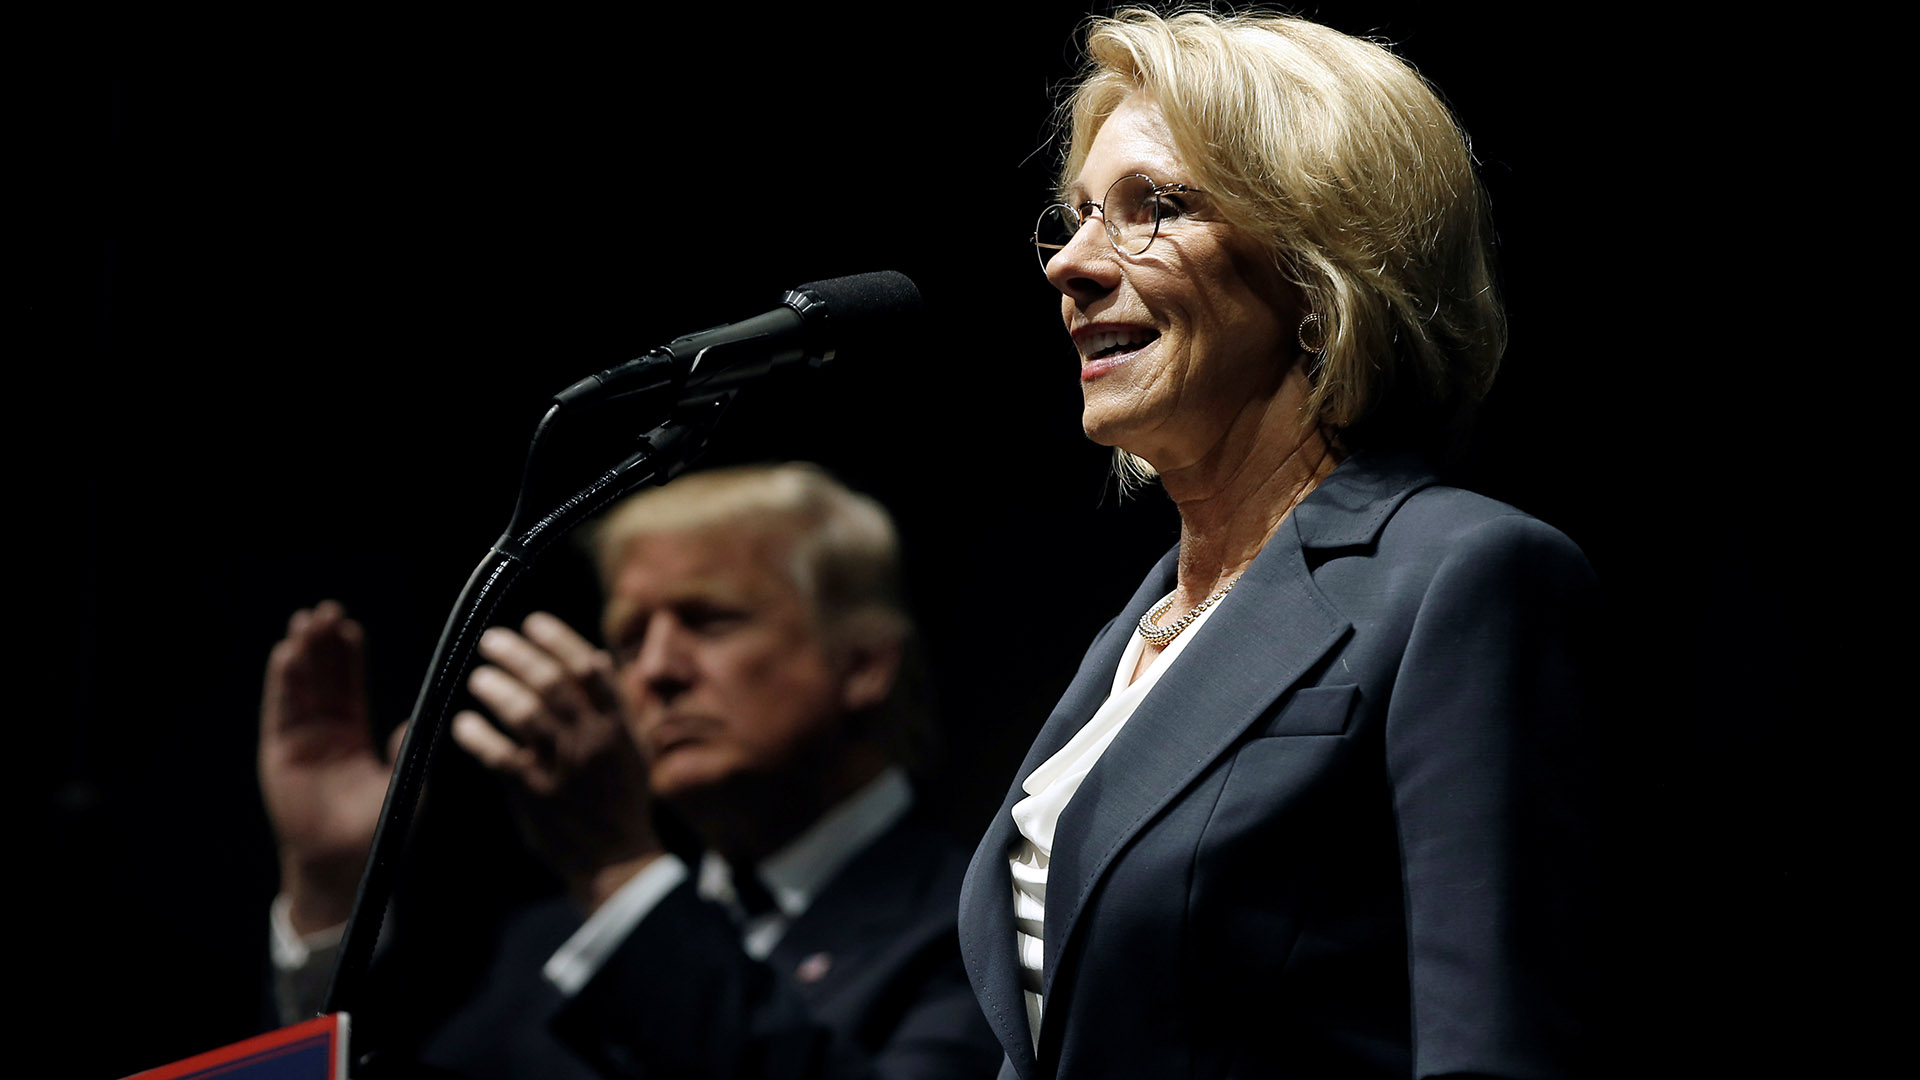 DeVos to face questions over schools, conservative activism